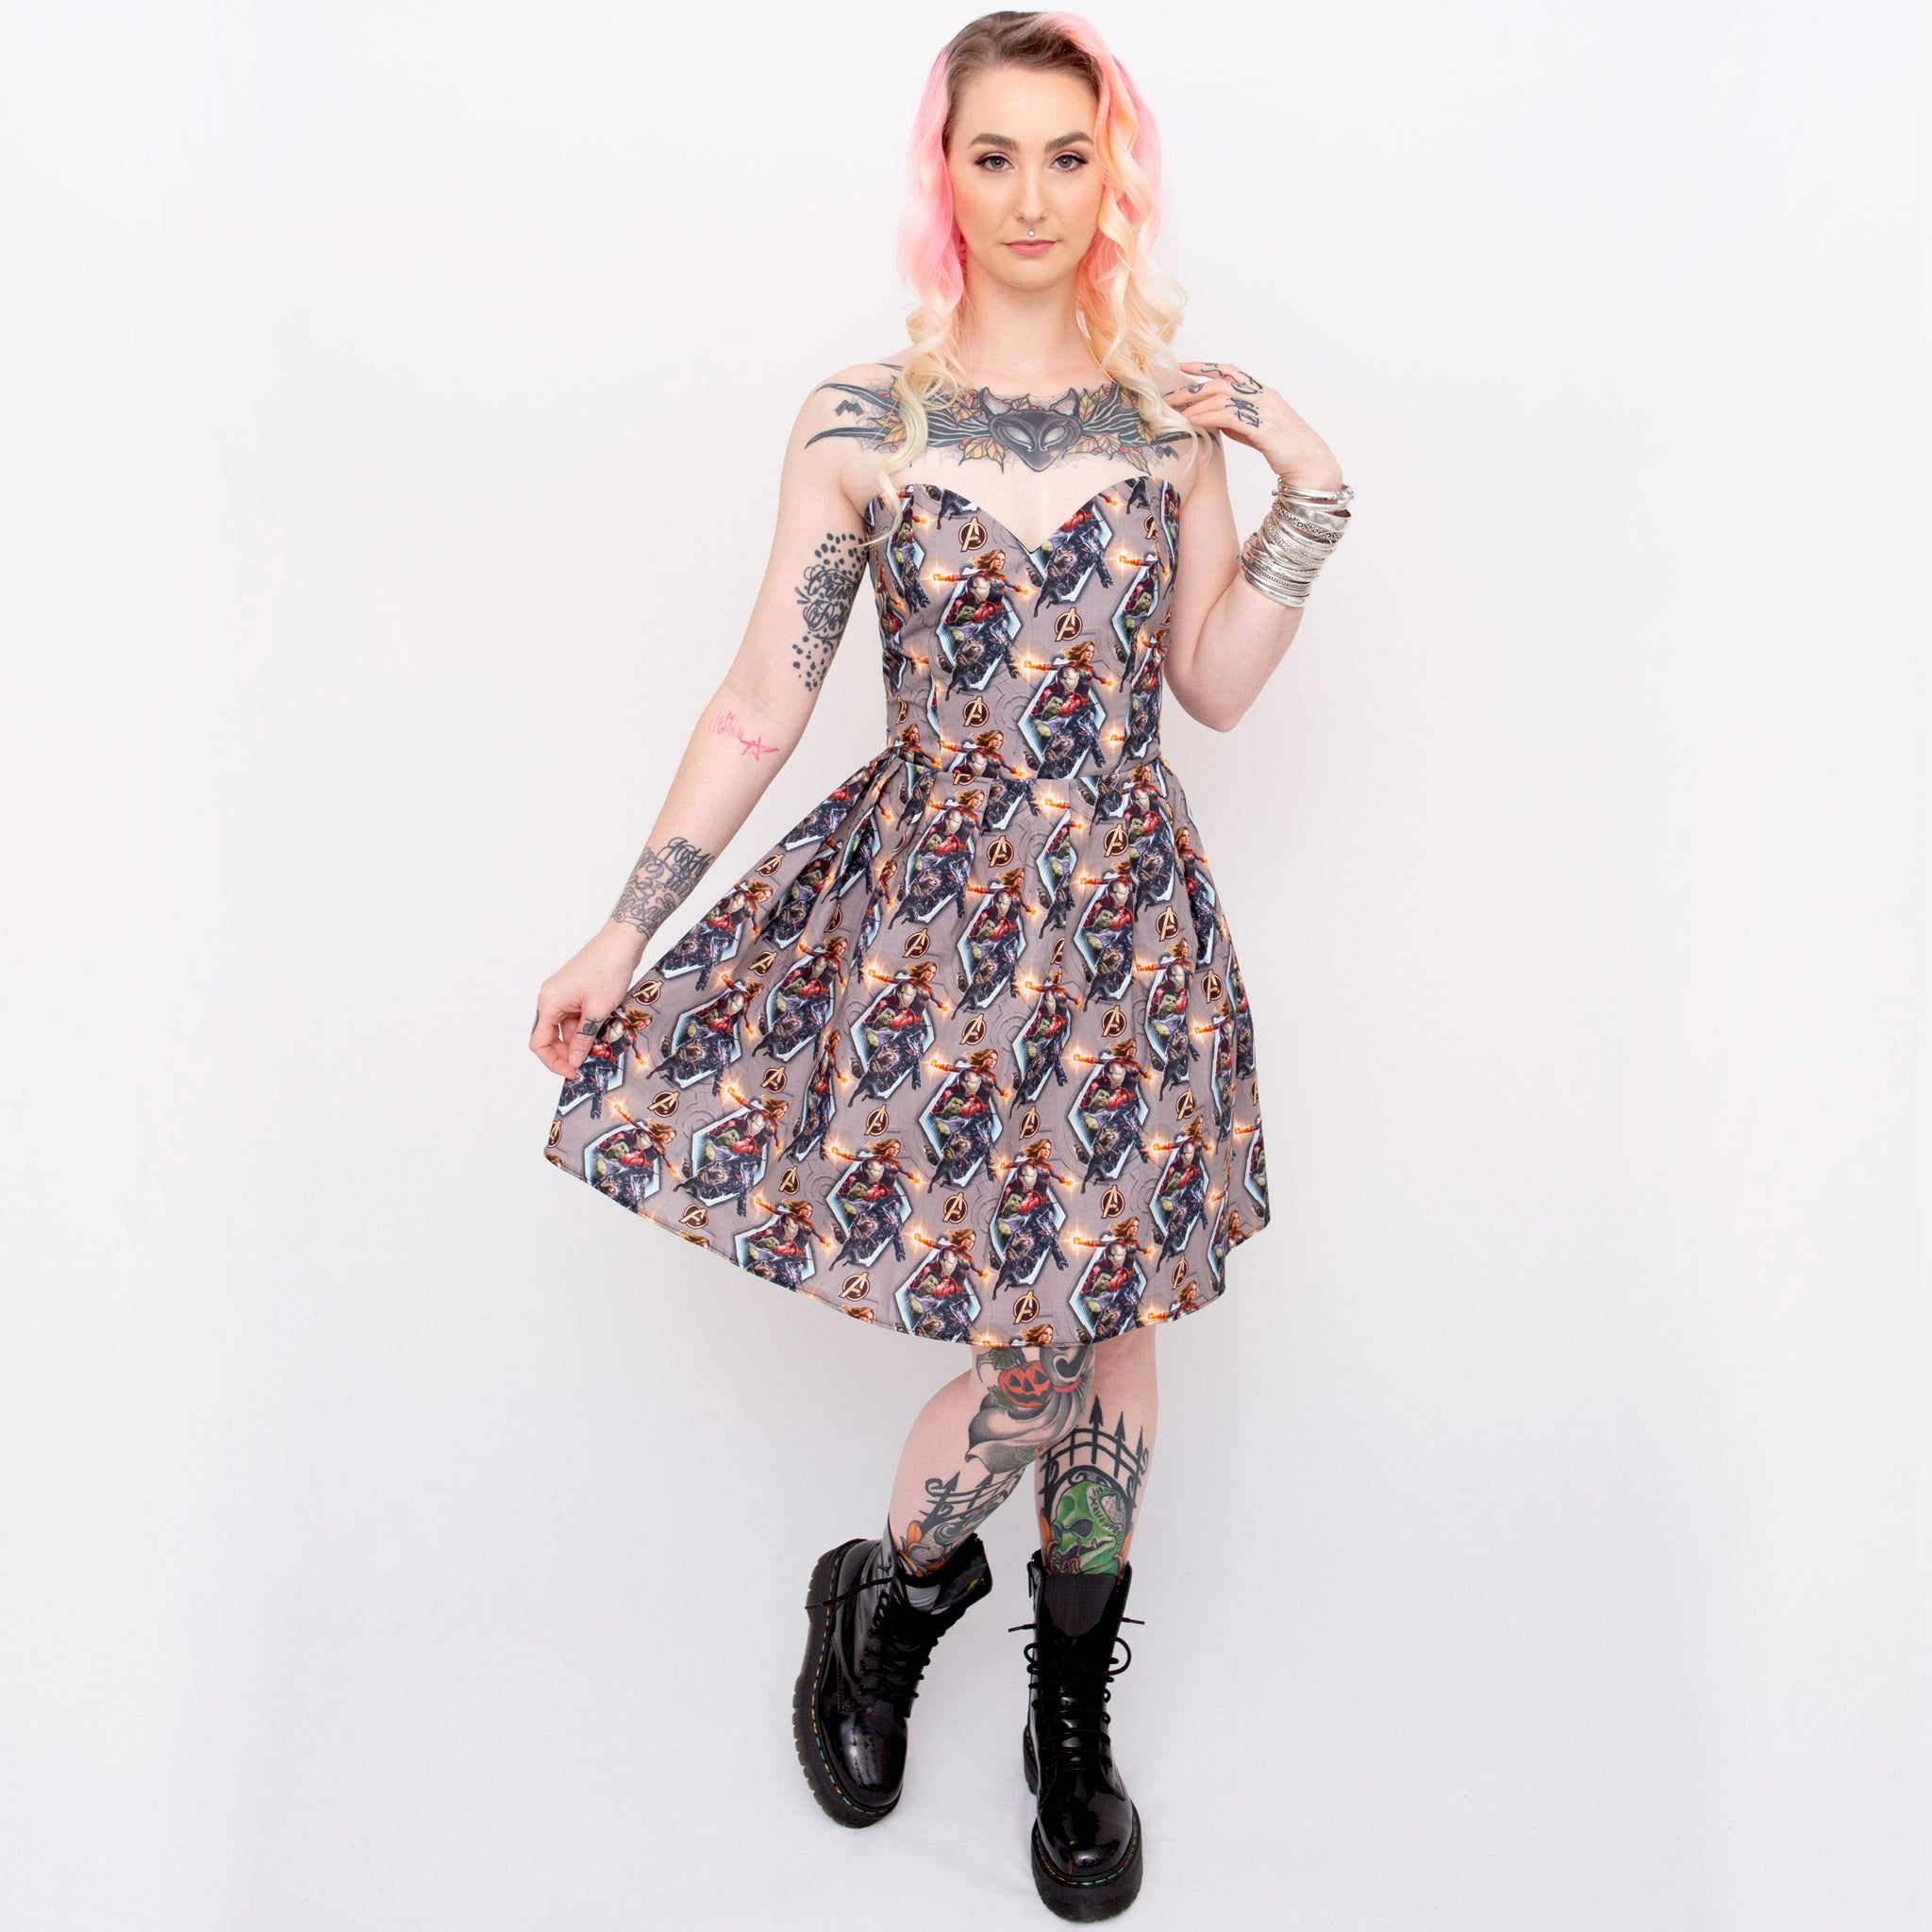 Avengers Endgame Sweetheart Dress